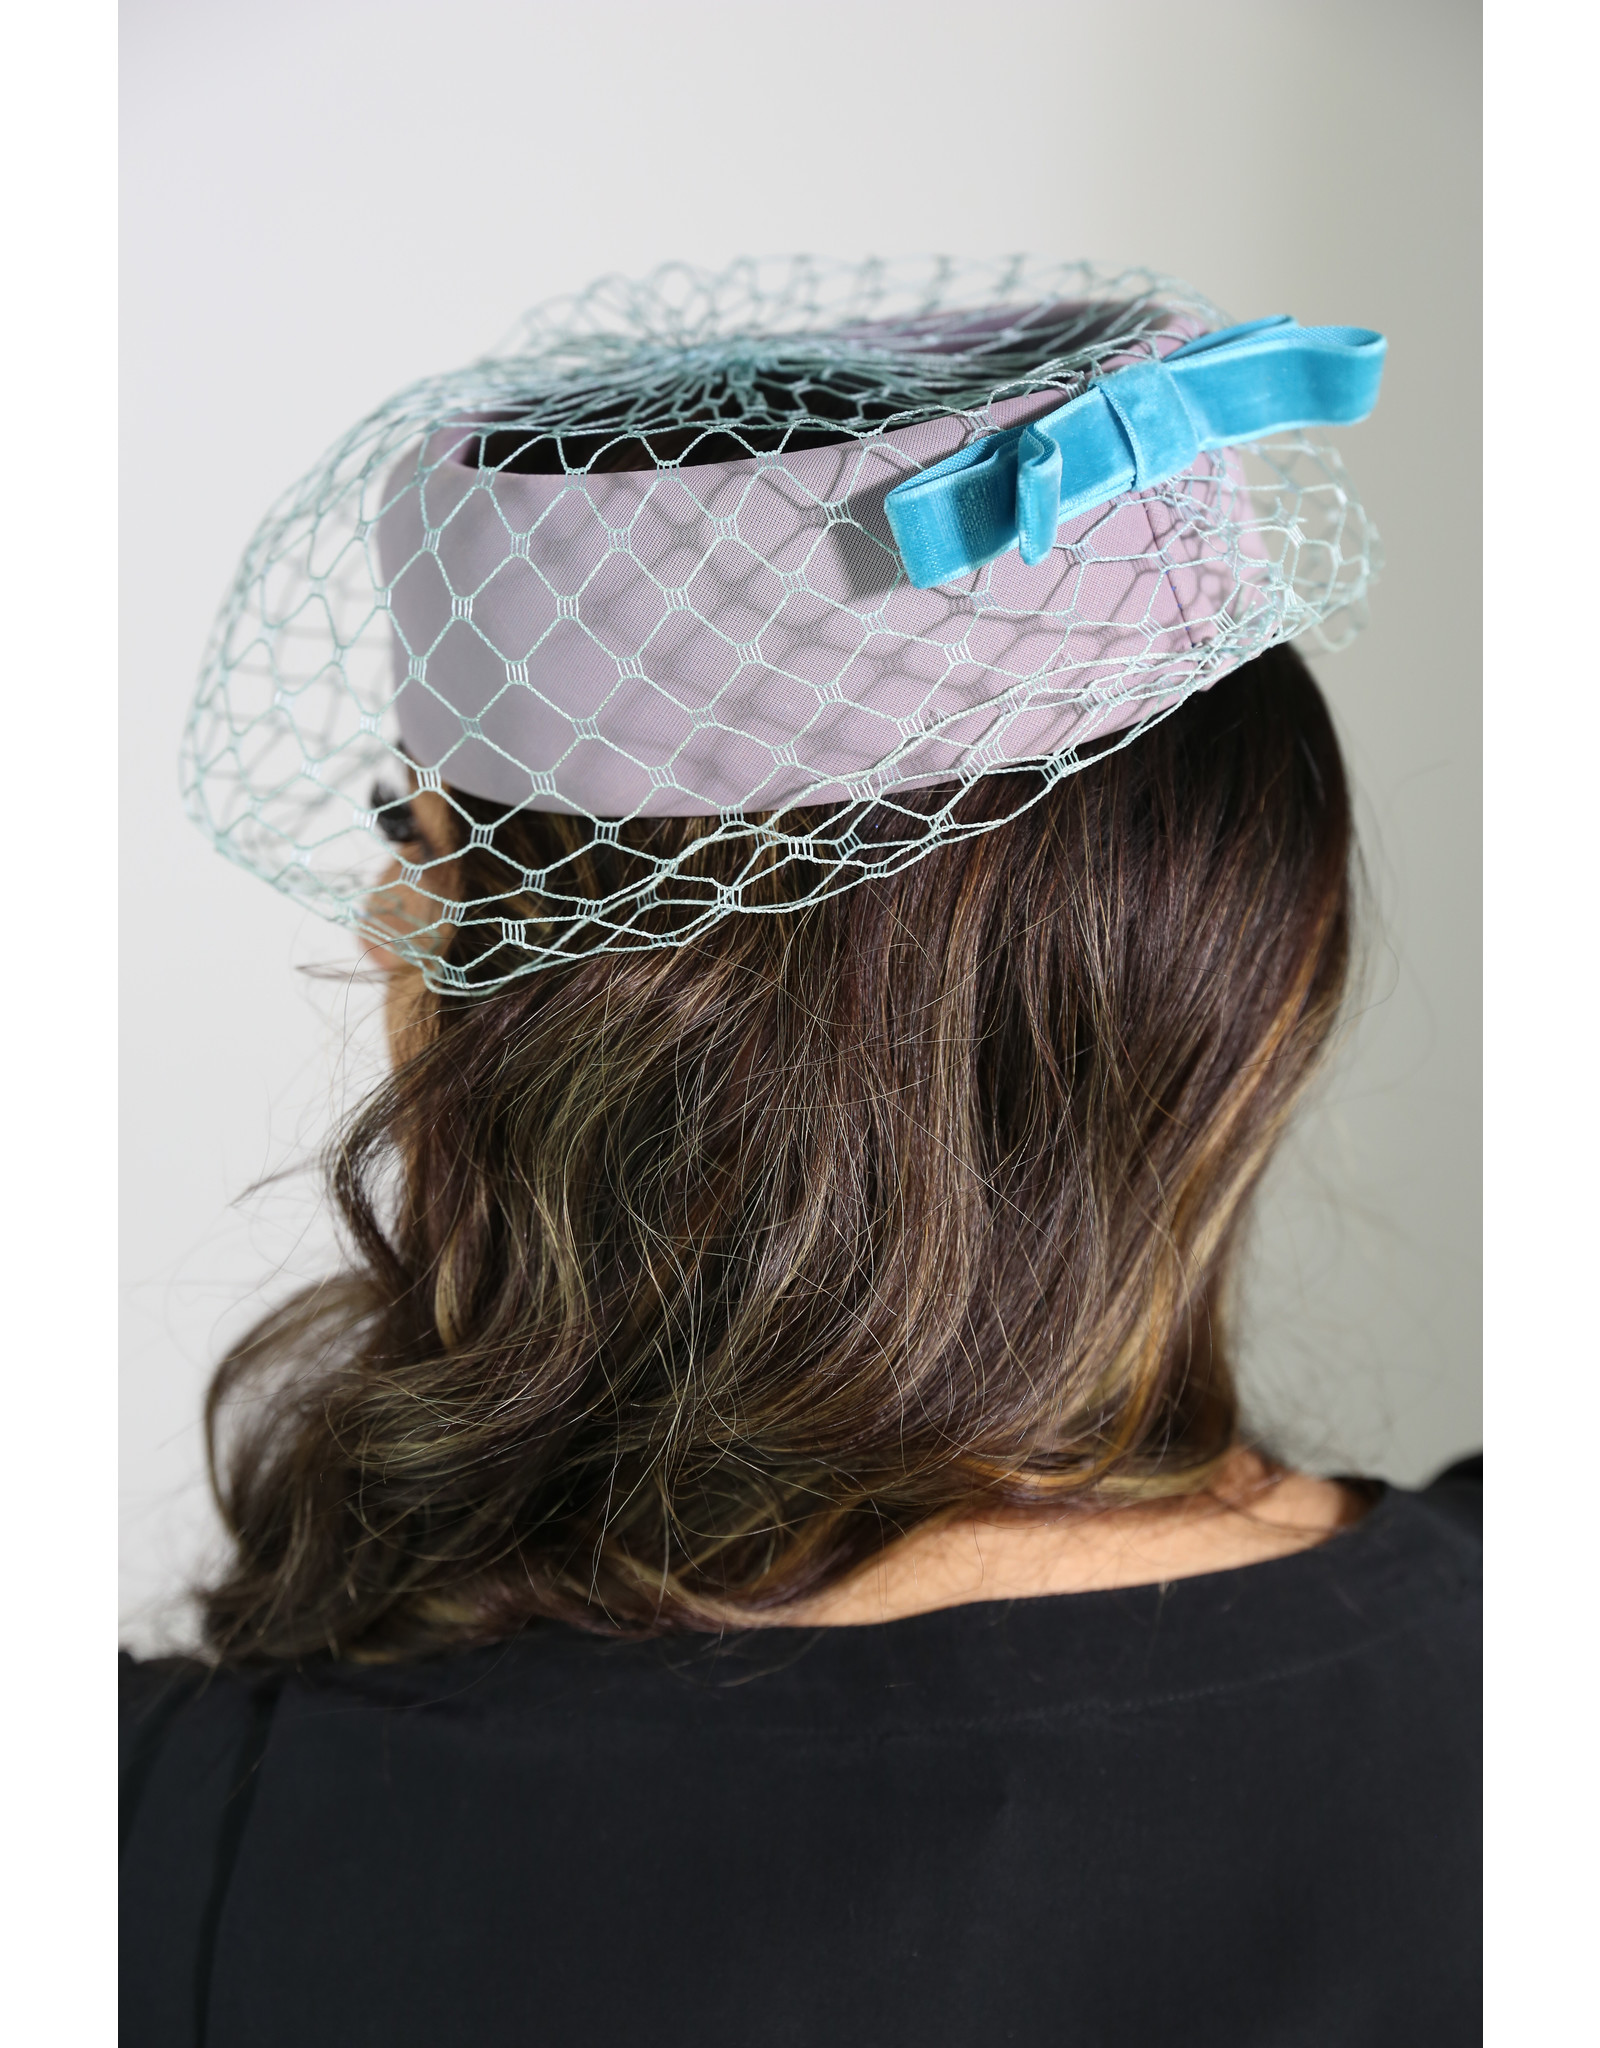 1950's Lavender & Teal Pill Box Hat